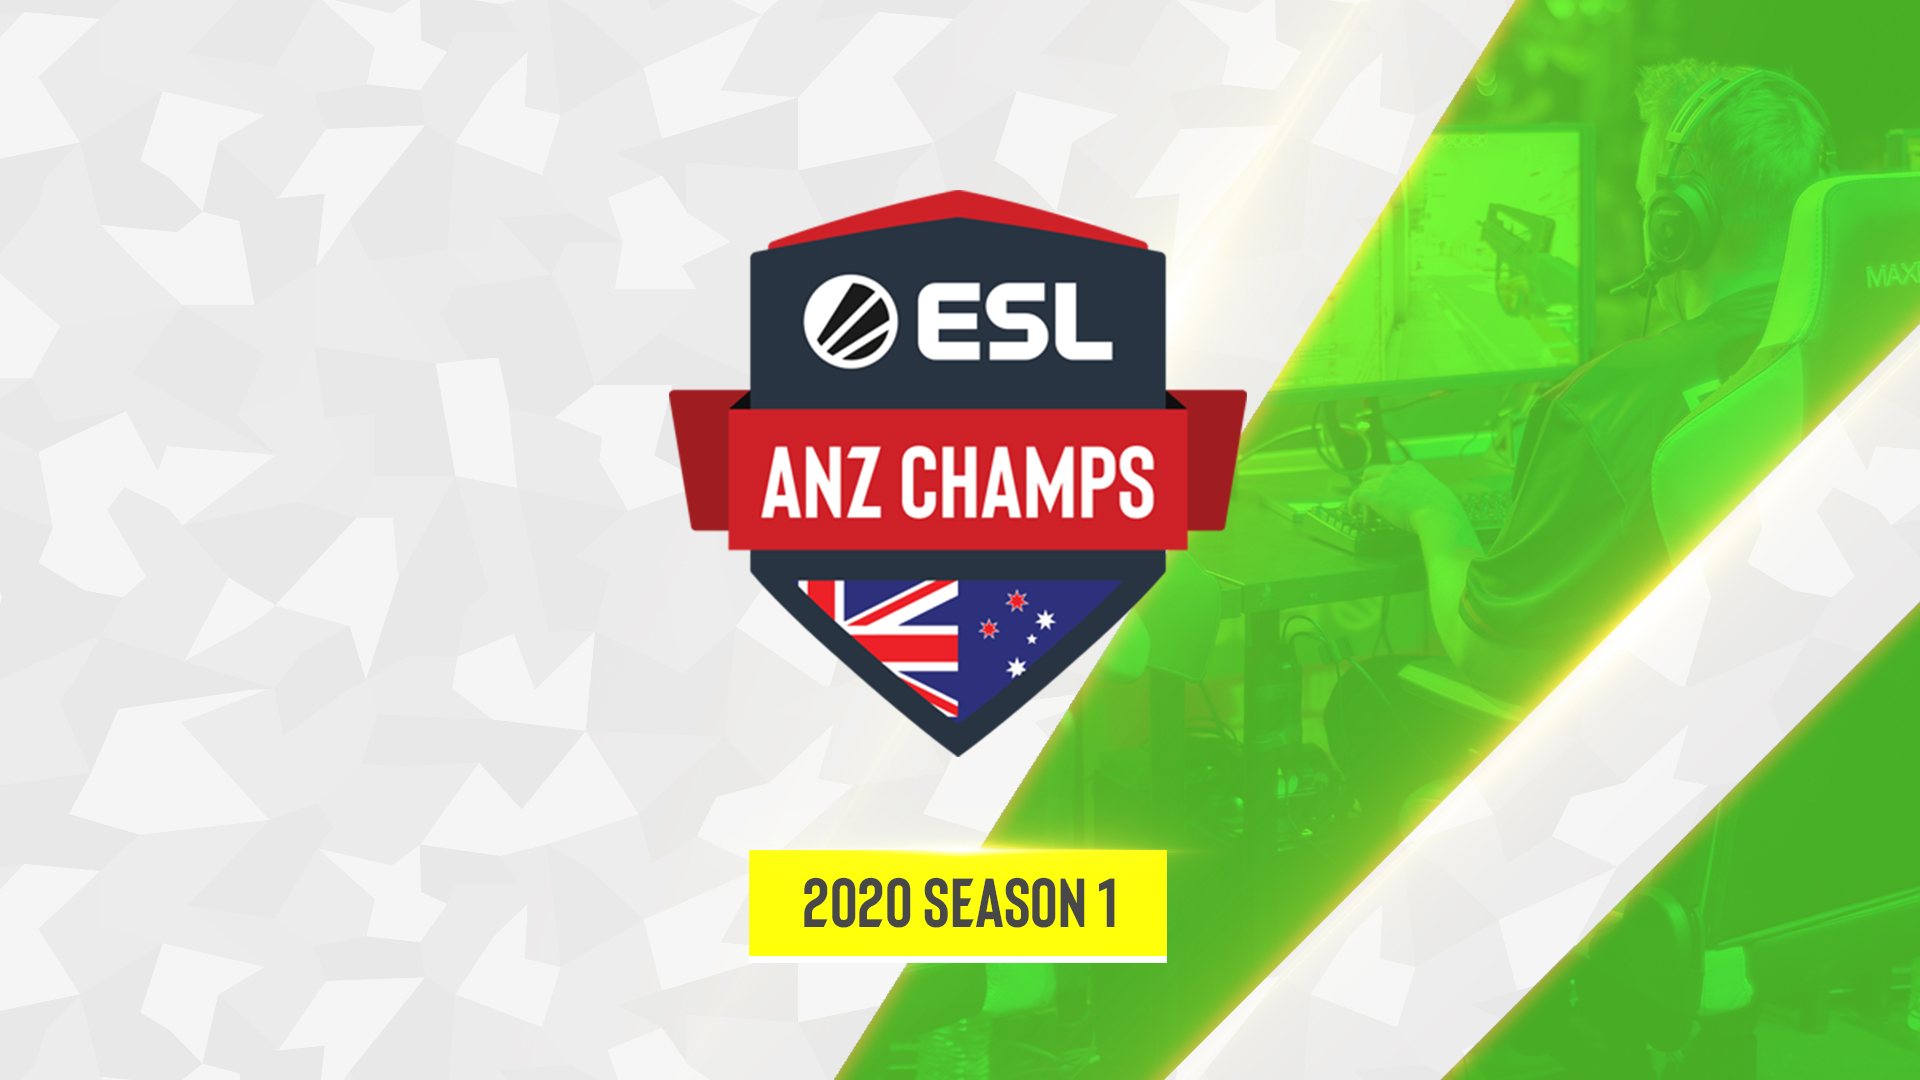 The ESL ANZ Champs Returns With A New Look For 2020